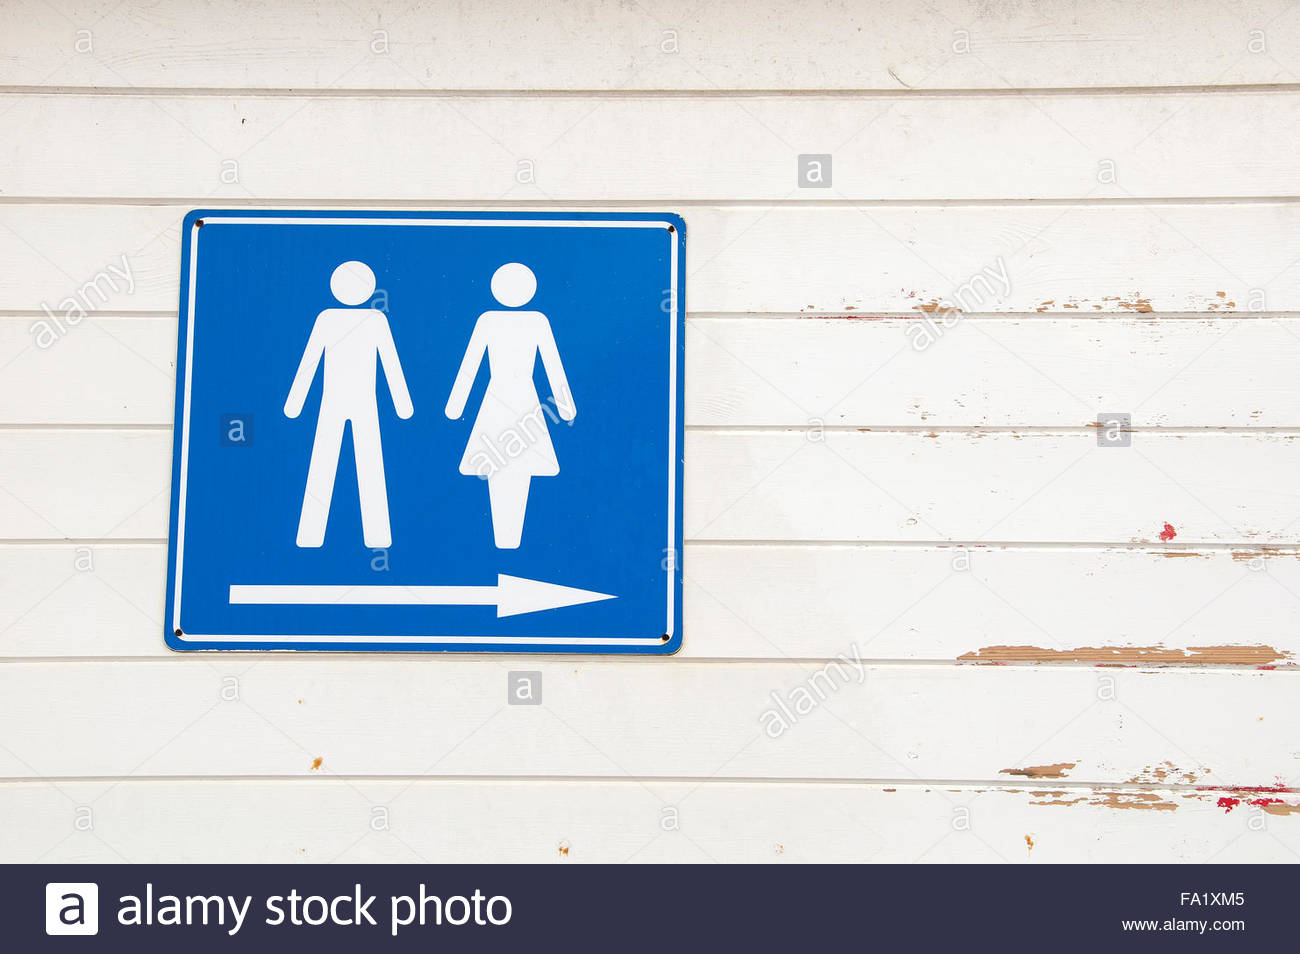 A Blue And White Male Female Toilet Sign With Arrow Pointing To The Right